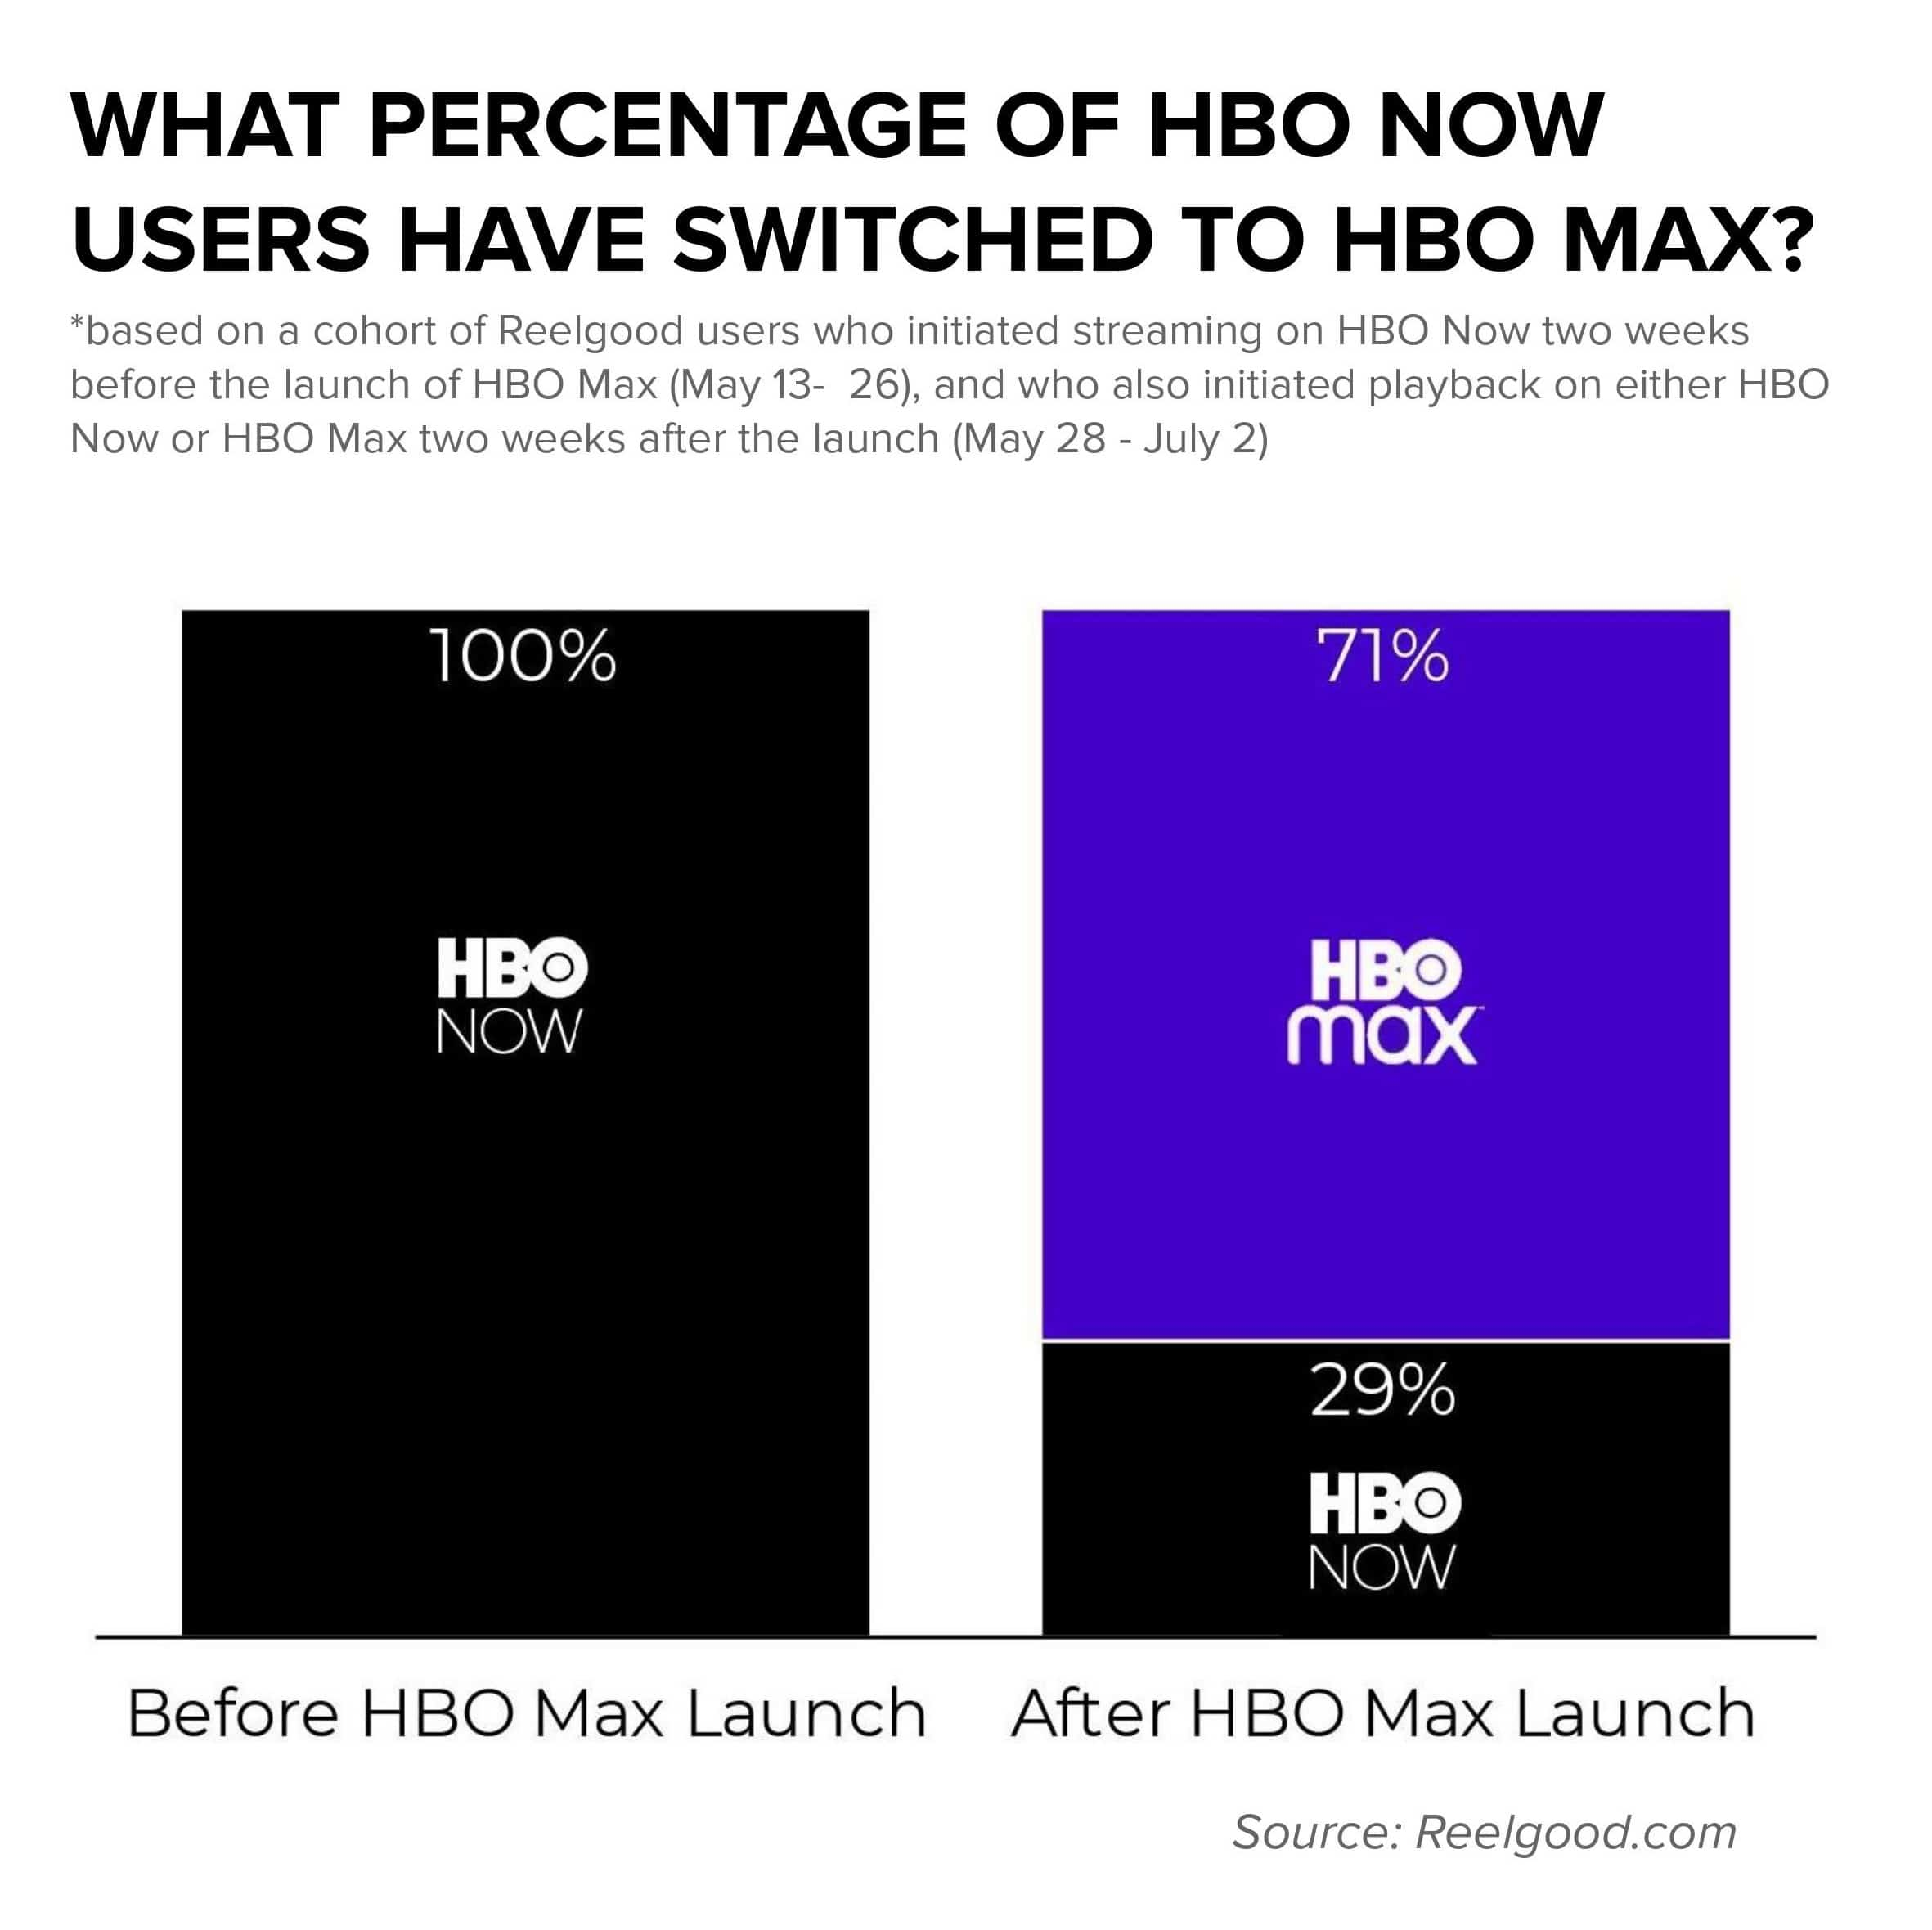 HBO Now to HBO Max Users